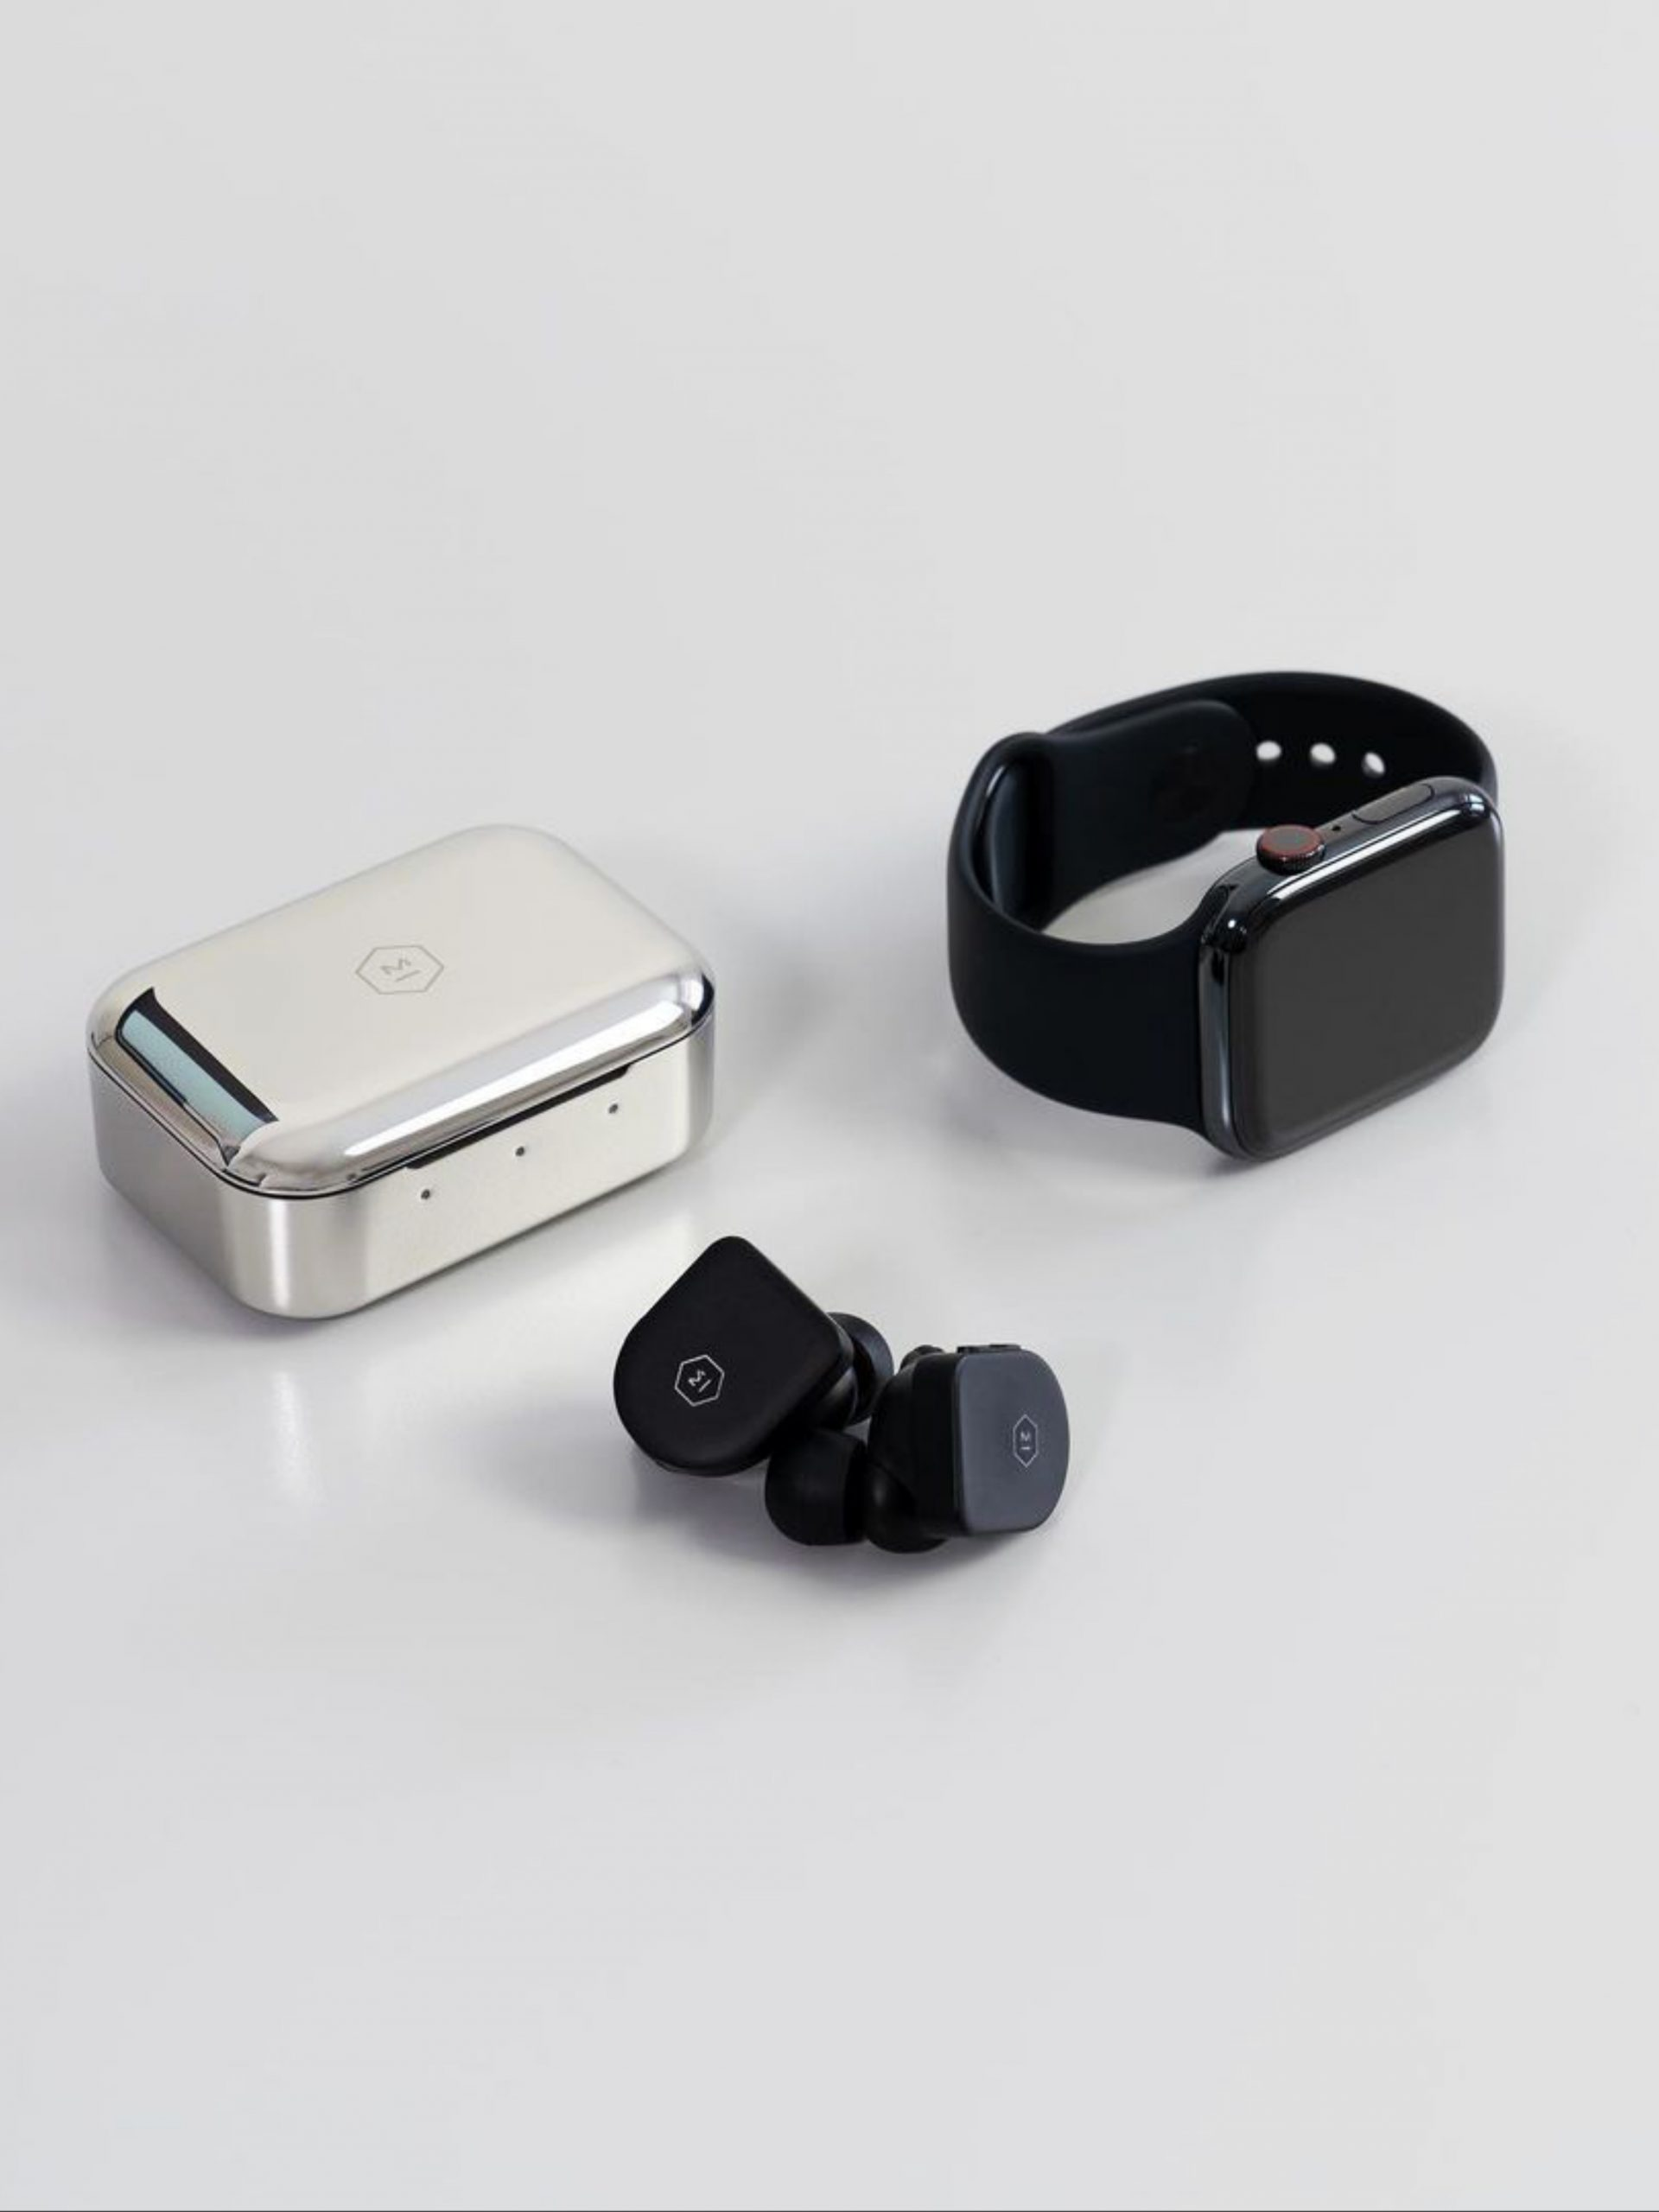 A smartwatch and earpods